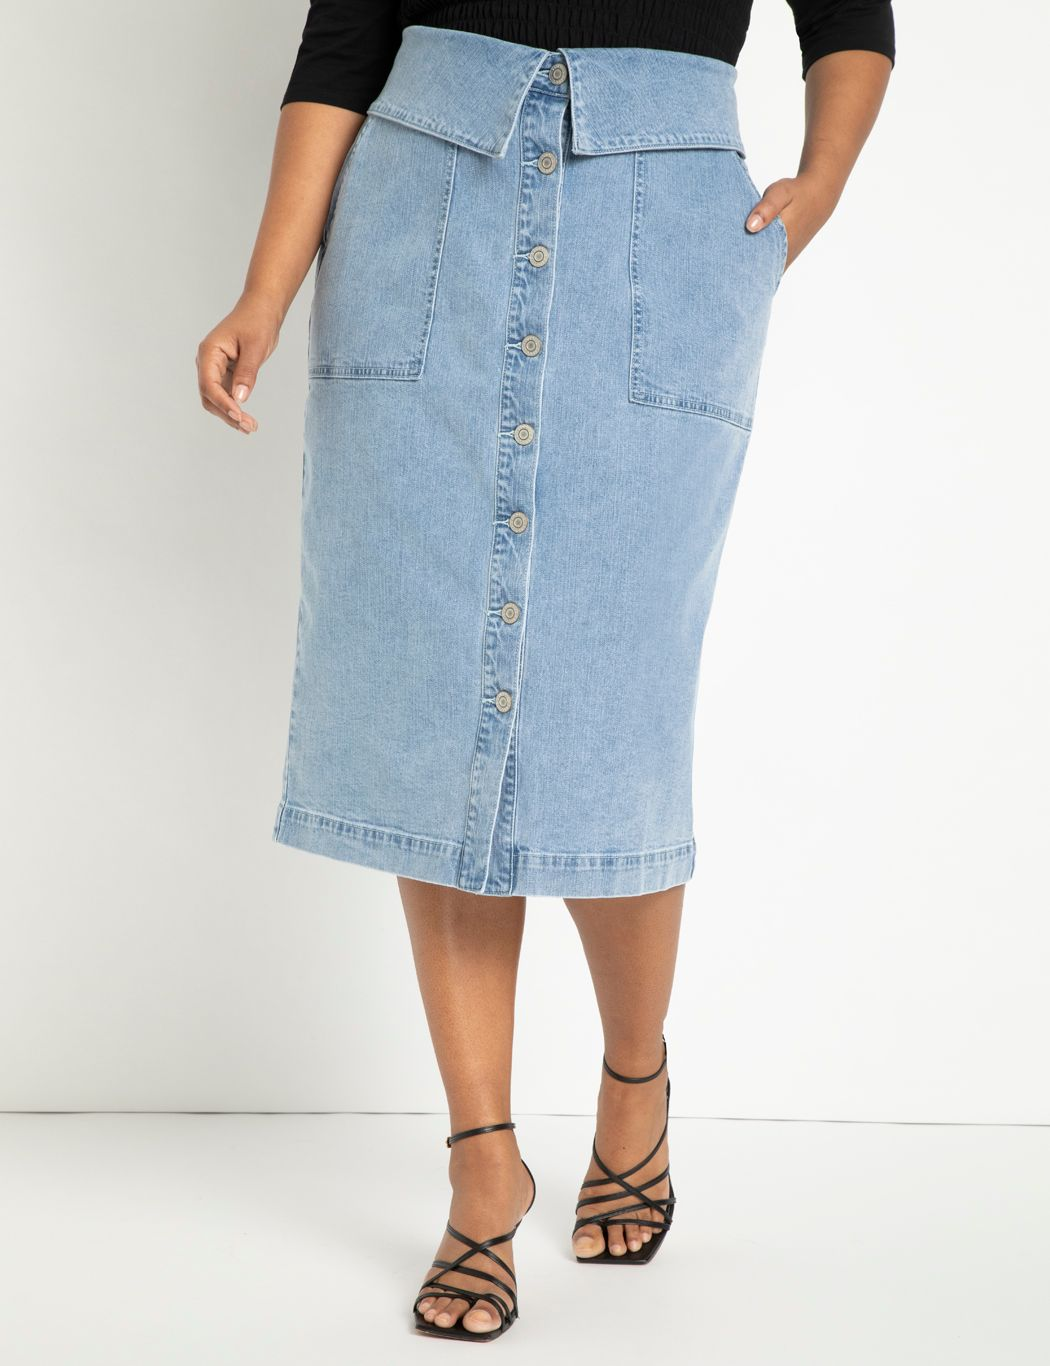 Button Front Denim Skirt with Foldover Waist